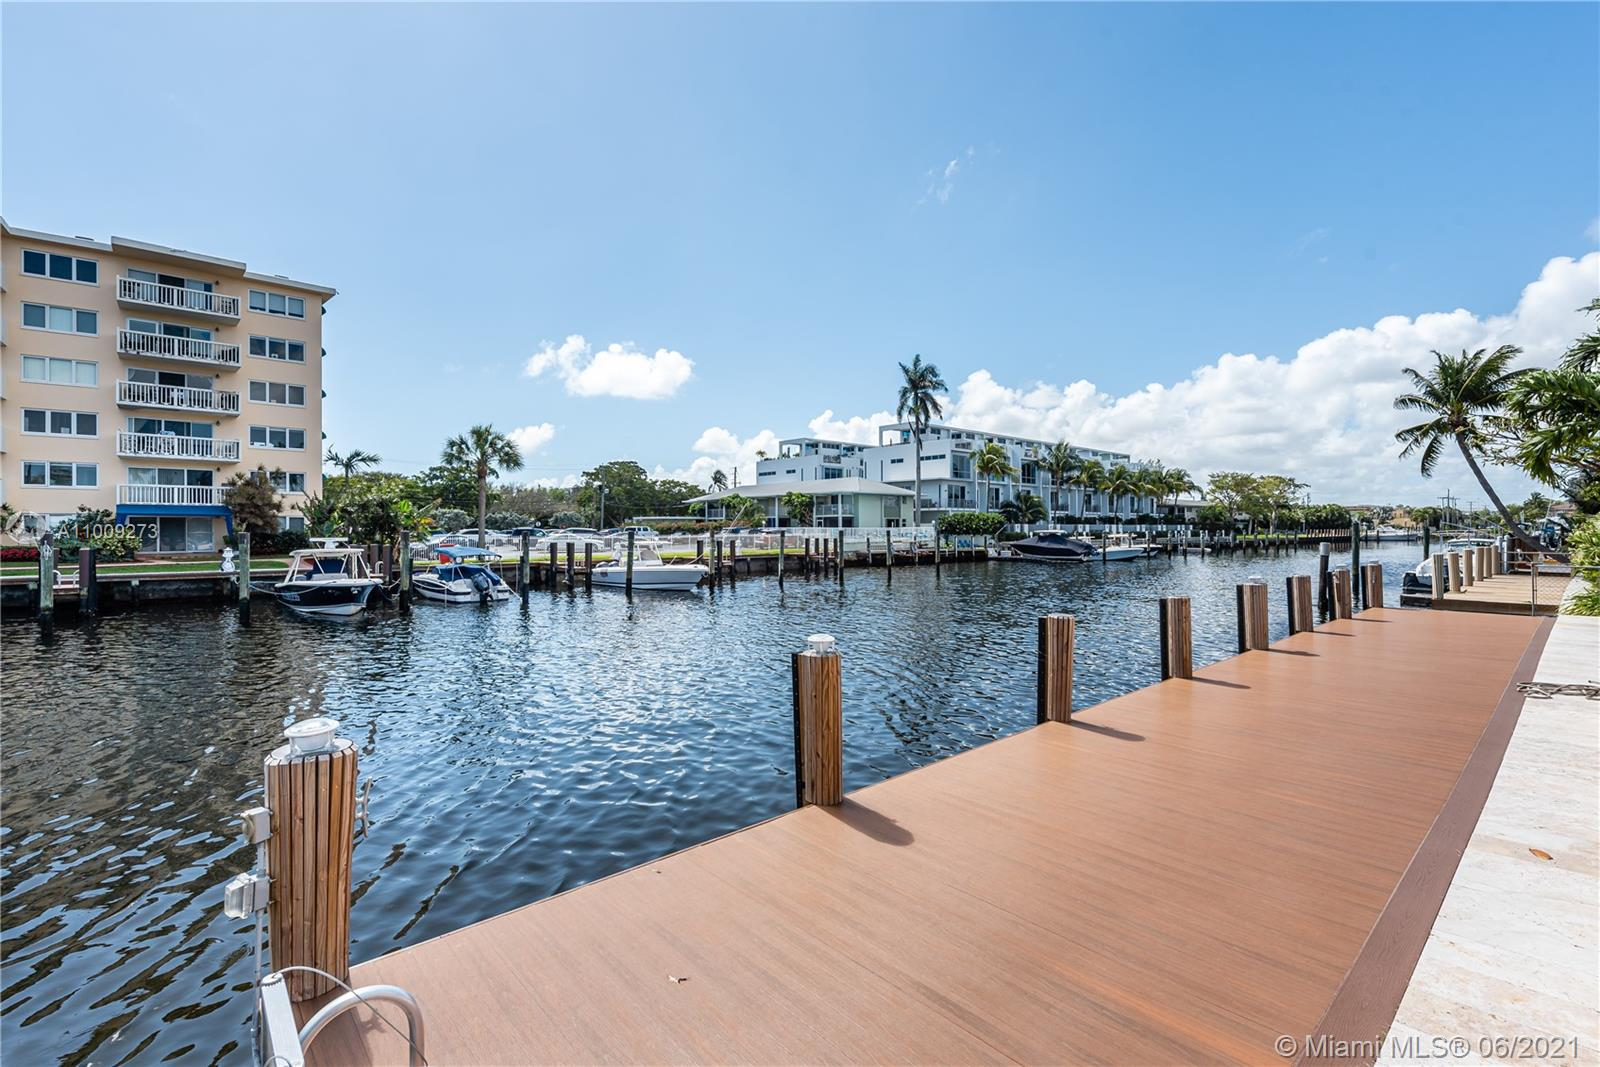 Tenant in place paying $6,700 per month until April 2022. Pompano Beach gem is the perfect dream home for yachters and people who enjoy outdoors. Prime 3/2 waterfront pool home on cul-du-sac w/ ideal setting for entertaining inside or out. Spacious pool deck, hot tub and oversized screened-in patio with shutters (can be easily enclosed for added living area). Baths are recently renovated and electrical panel is new. Brand new dock stretches 80' along water to moor your yacht on widest canal. Only 4 houses and 320' from the Intracoastal w/ no fixed bridges so watch the boat parade. Master bedroom and kitchen overlook the pool and water w/ impact glass. Gas cooking available. 5 minute walk or bike ride to the beach. Enjoy cafes/restaurants at Lauderdale-by-the-Beach w/ live music nightly.